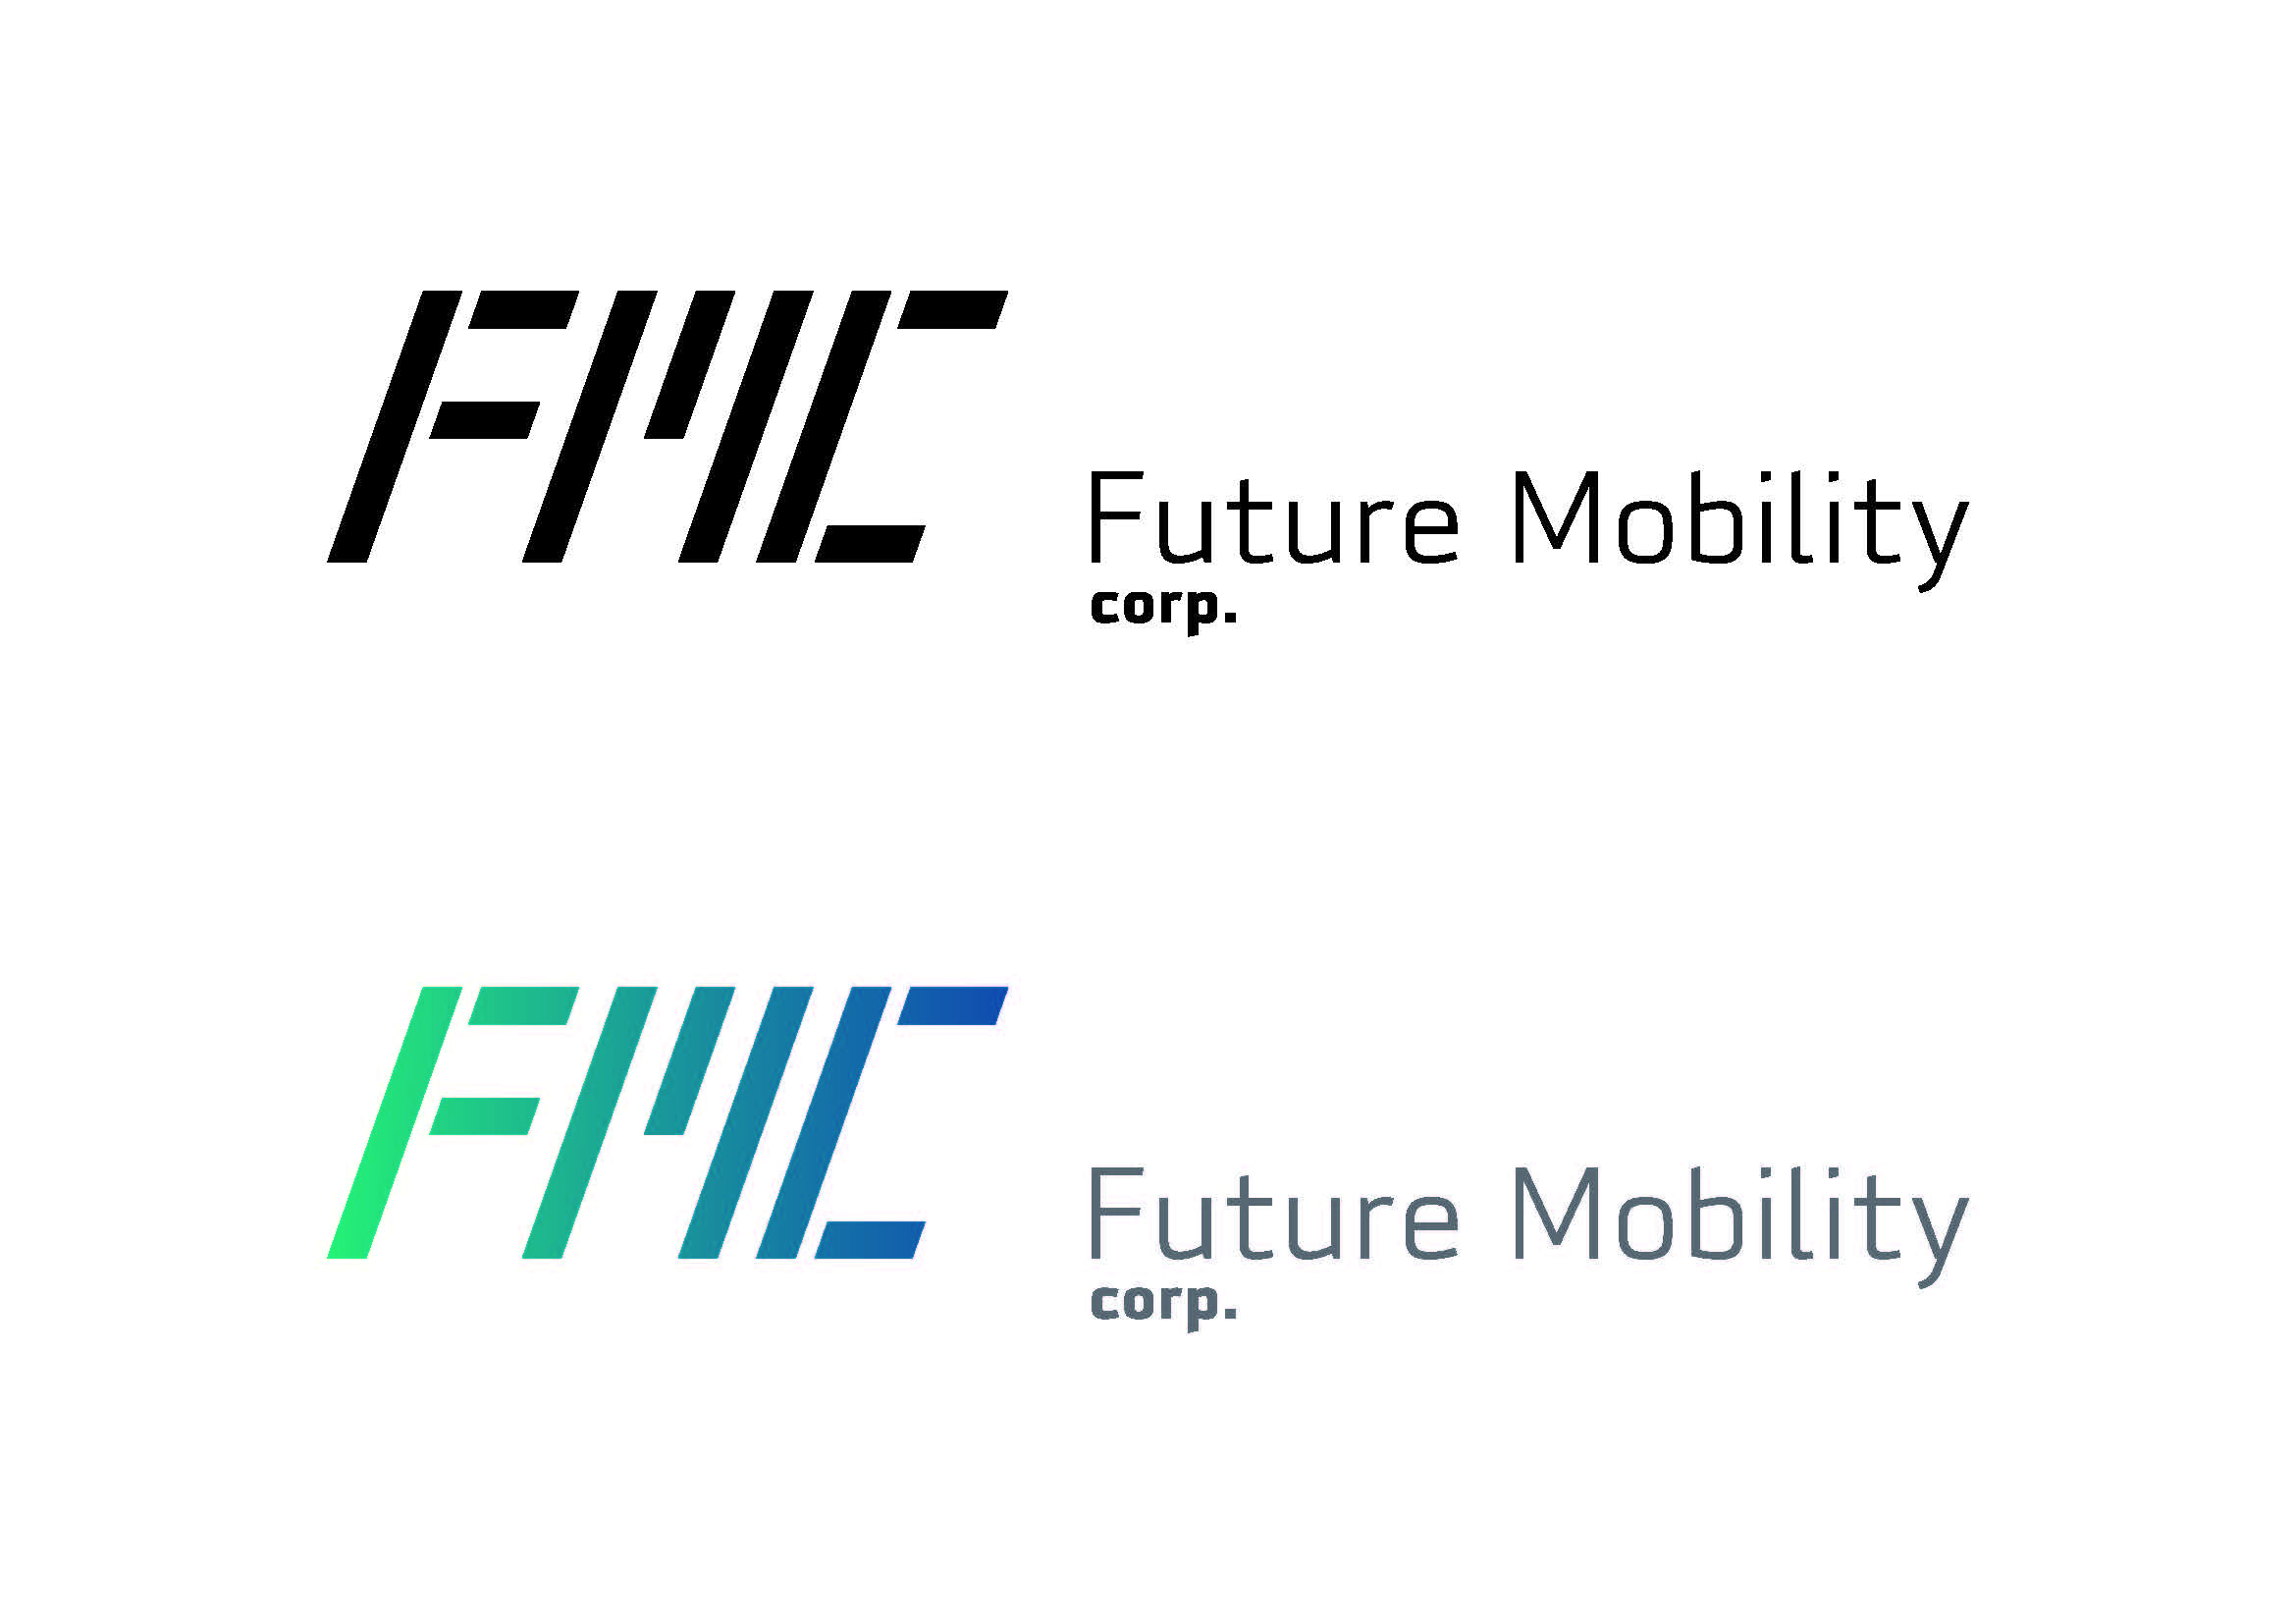 Future Mobility Corporation